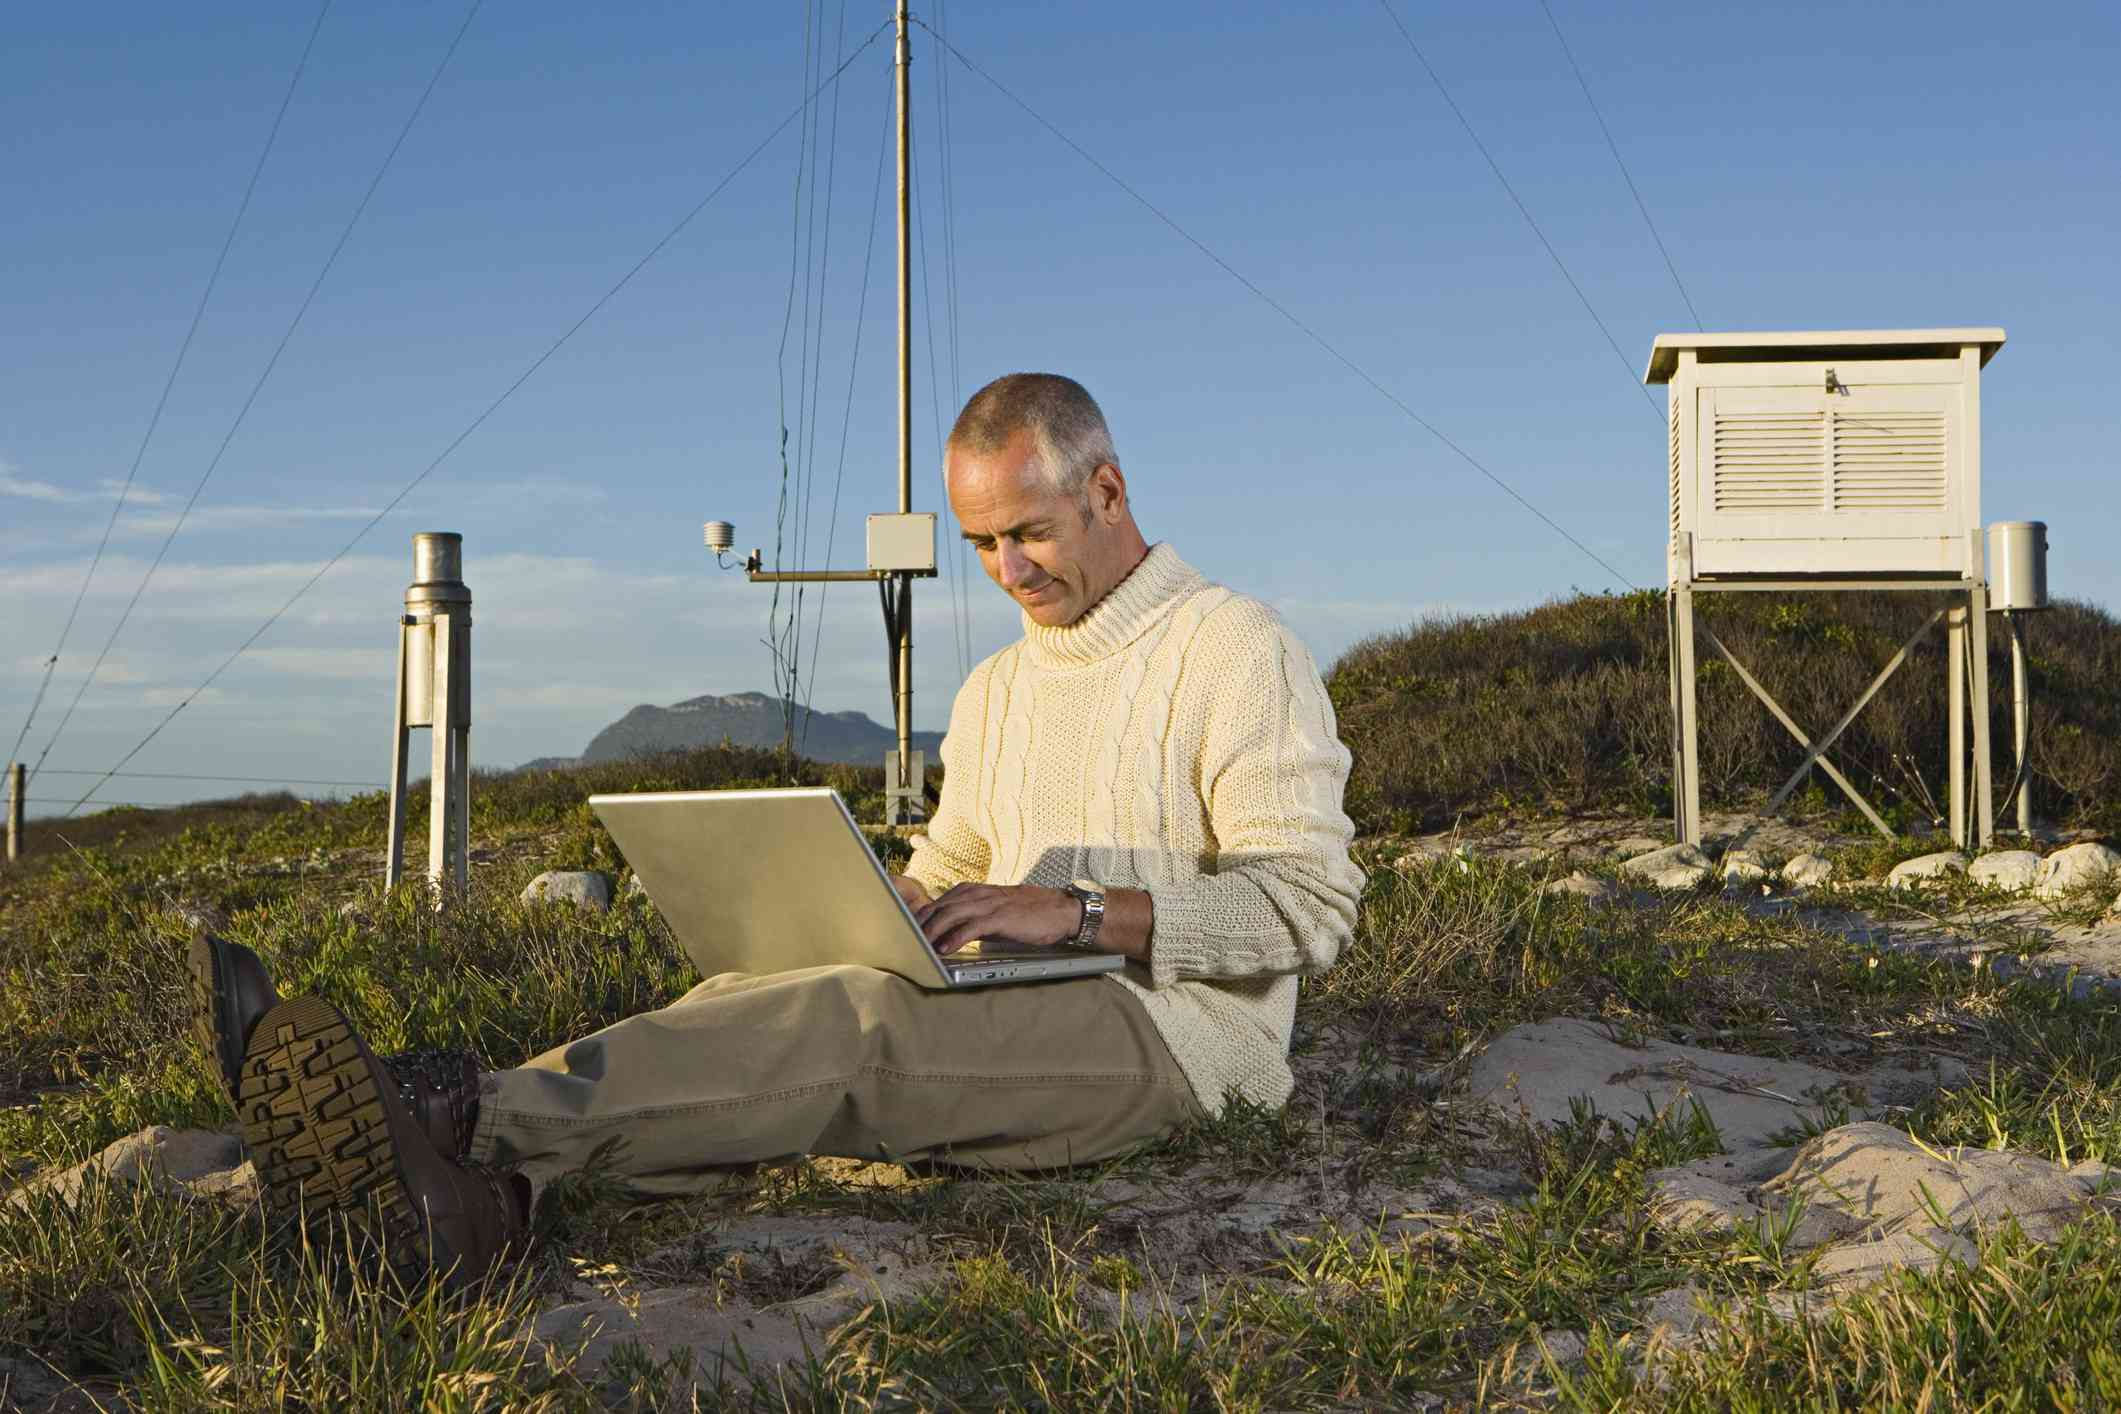 A meteorologist collects data from a mountaintop weather station.